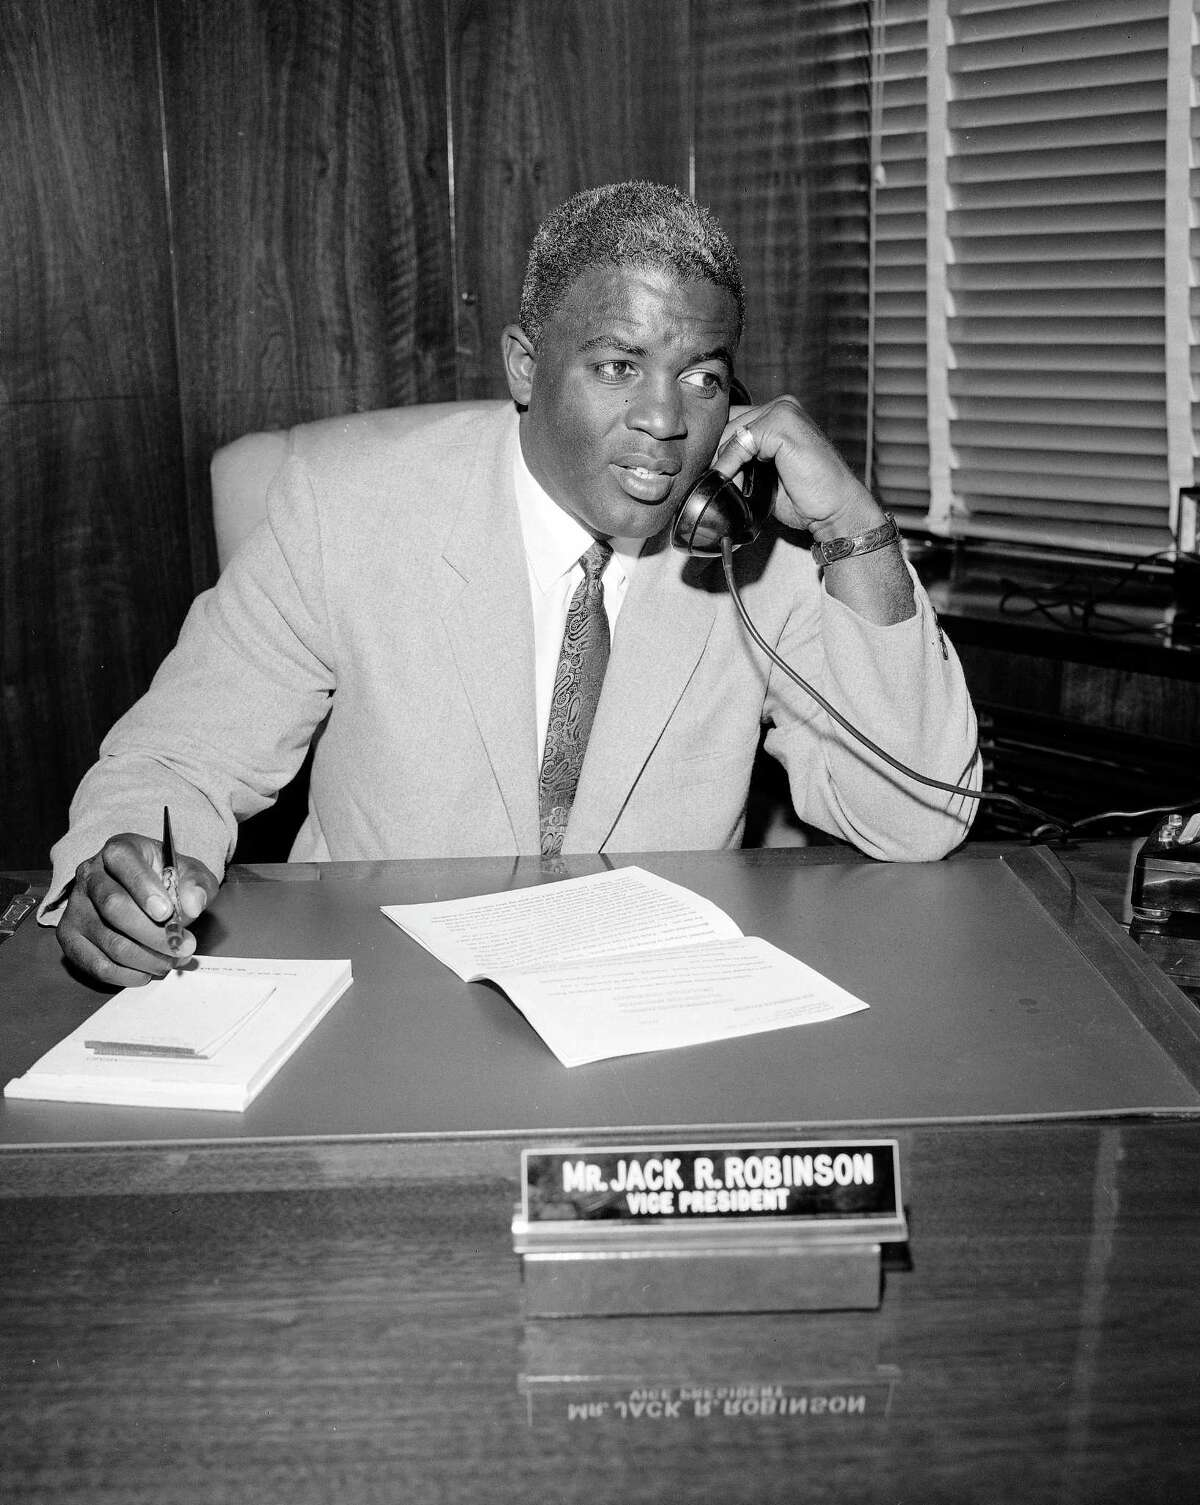 In this 1957 file photo retired baseball legend Jackie Robinson speaks on the phone at his desk in the offices of the Chock Full O' Nuts Company in New York.